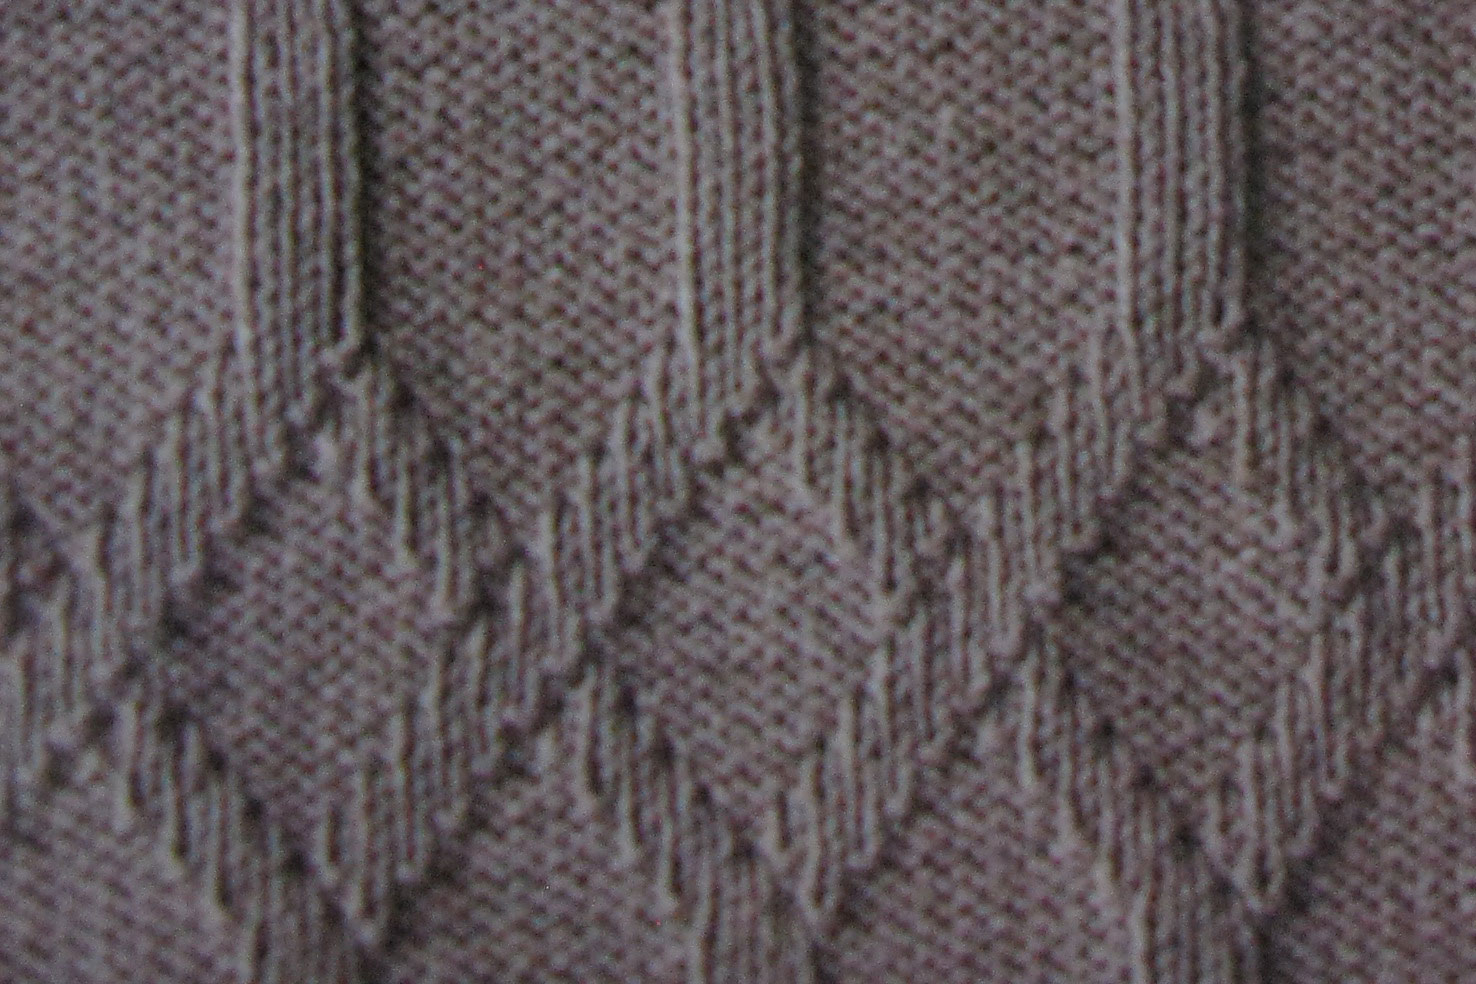 Knitting Undo Purl Stitch : Interlinked Diamonds Knit and Purl Stitch - Knitting Kingdom